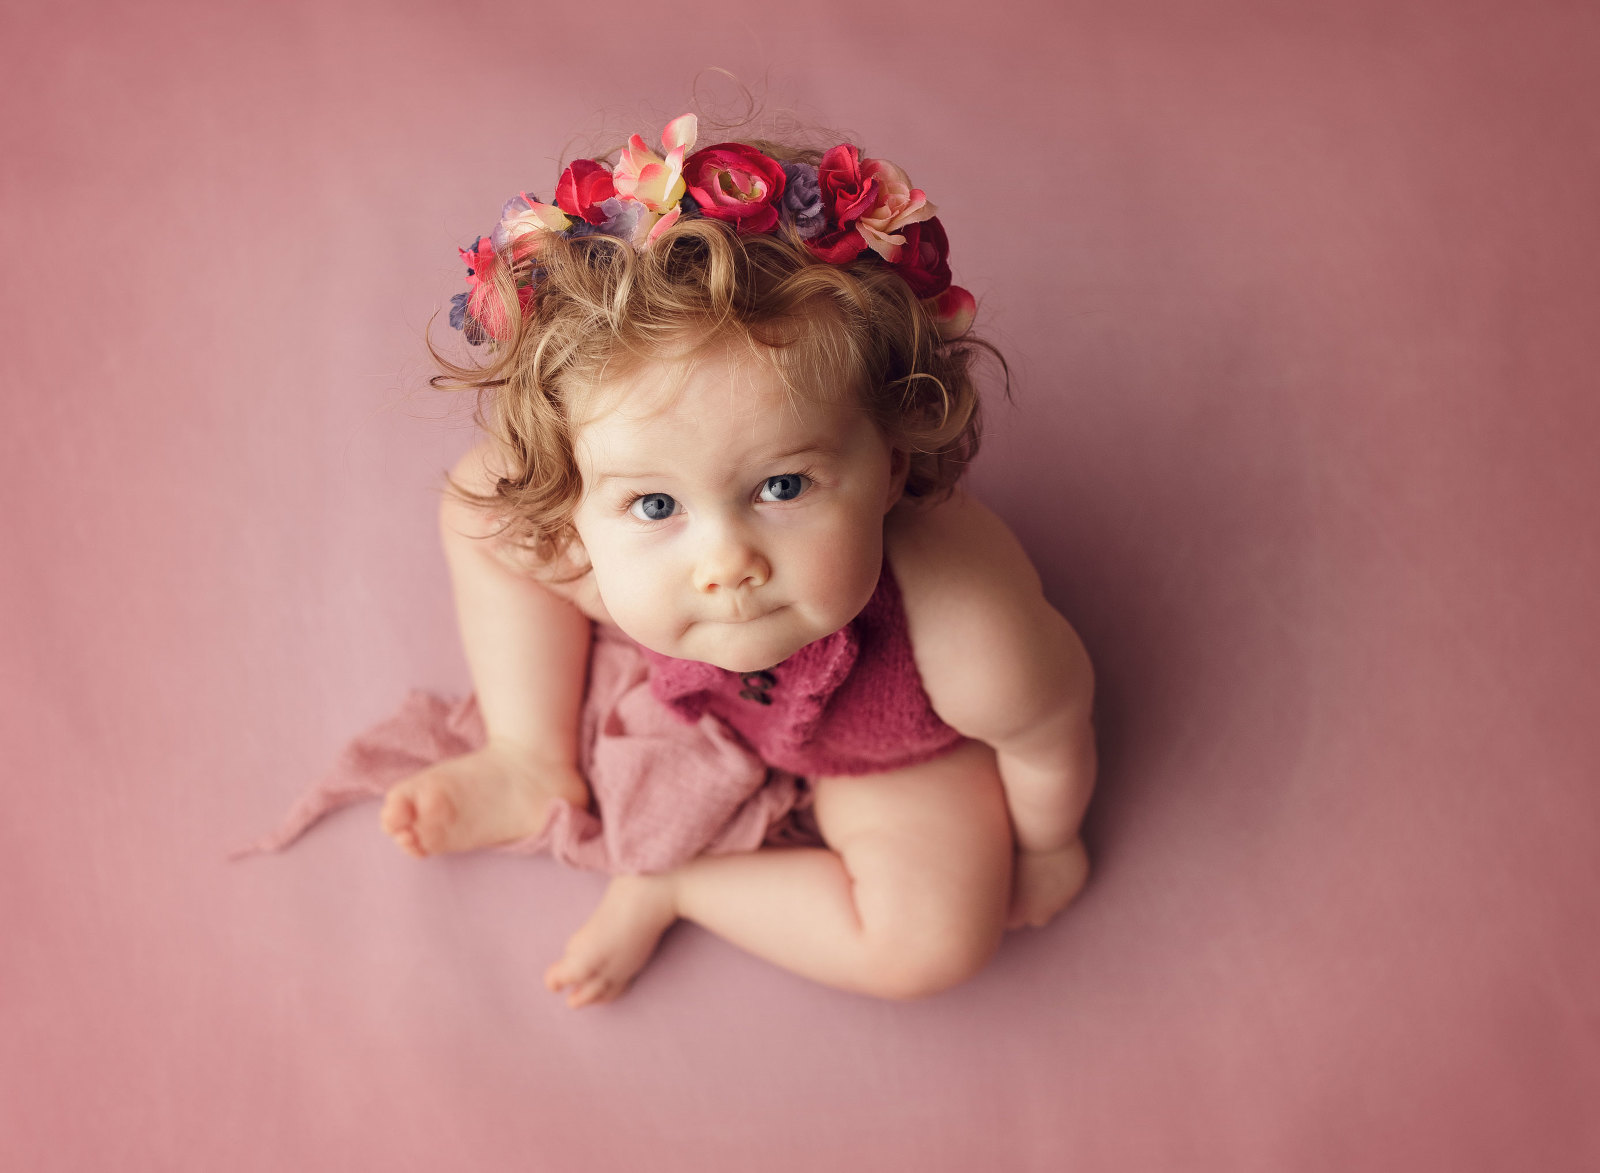 One year old girl sitting on floor wearing floral crown looking up